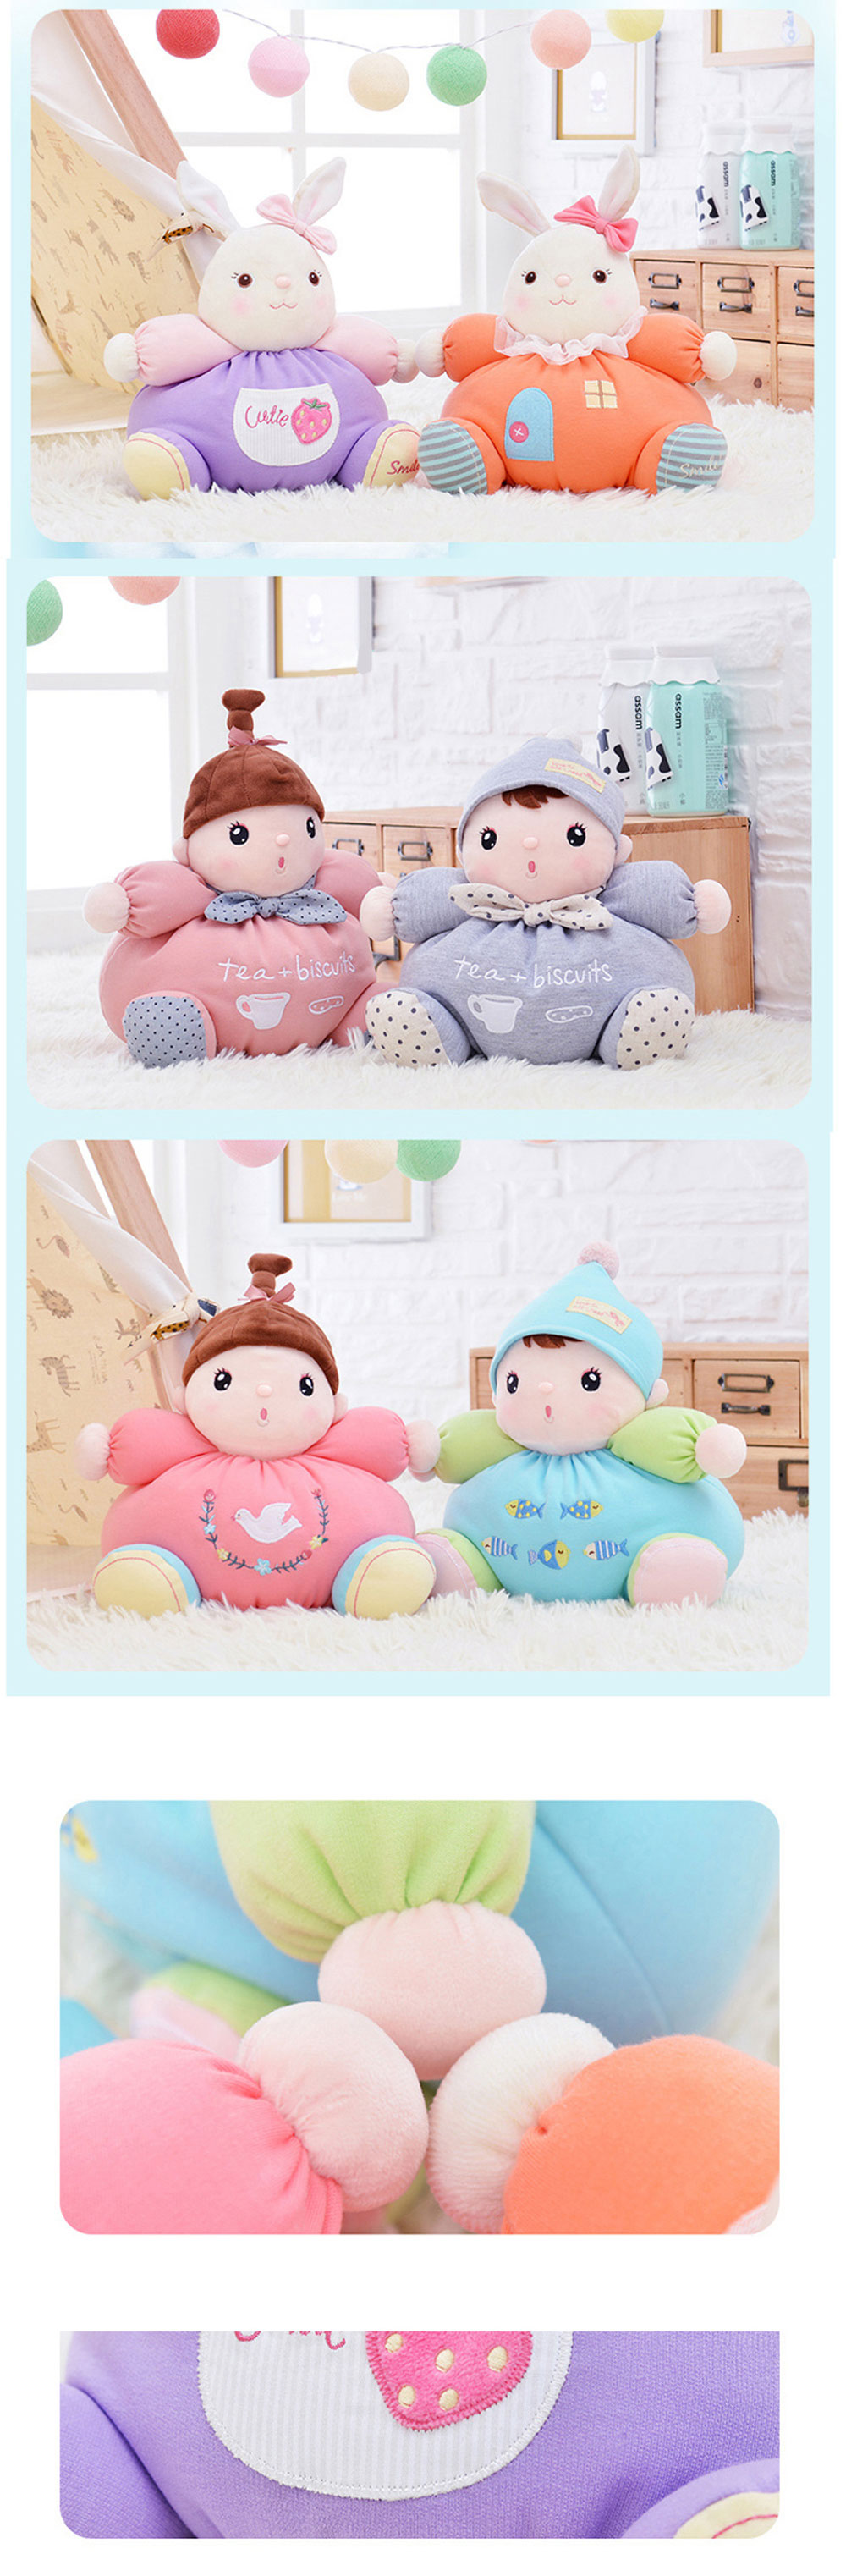 Metoo Plush Doll Toy Birthday Christmas Gift for Baby